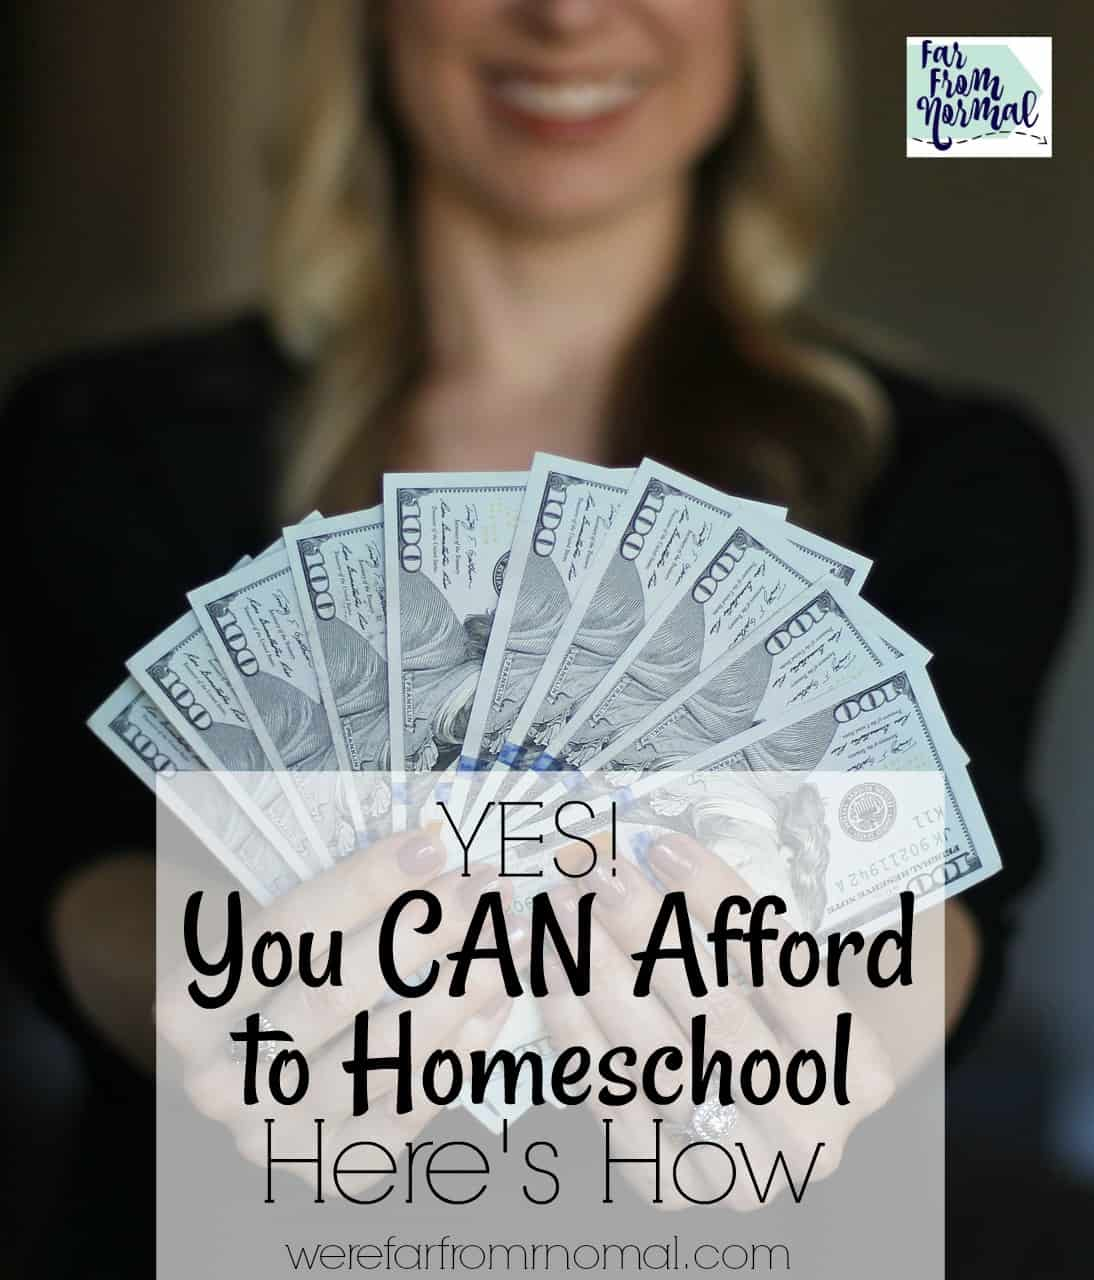 Yes! You CAN Afford to Homeschool! Here's How!